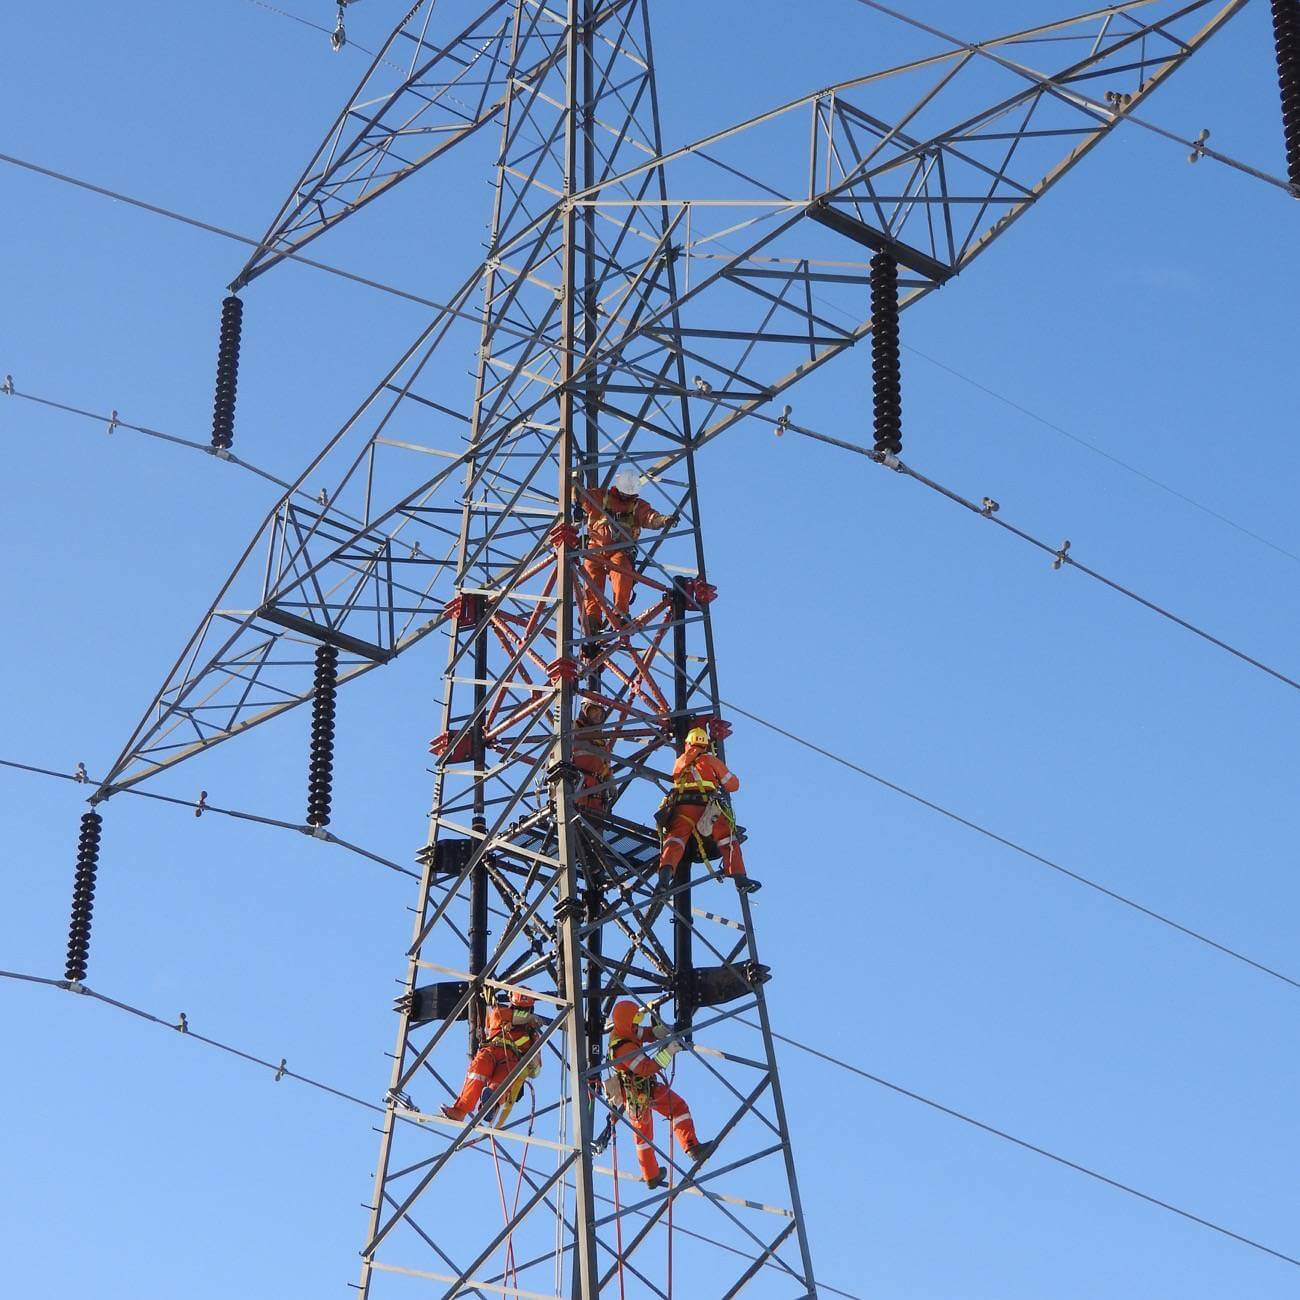 Workers up high on a transmission tower